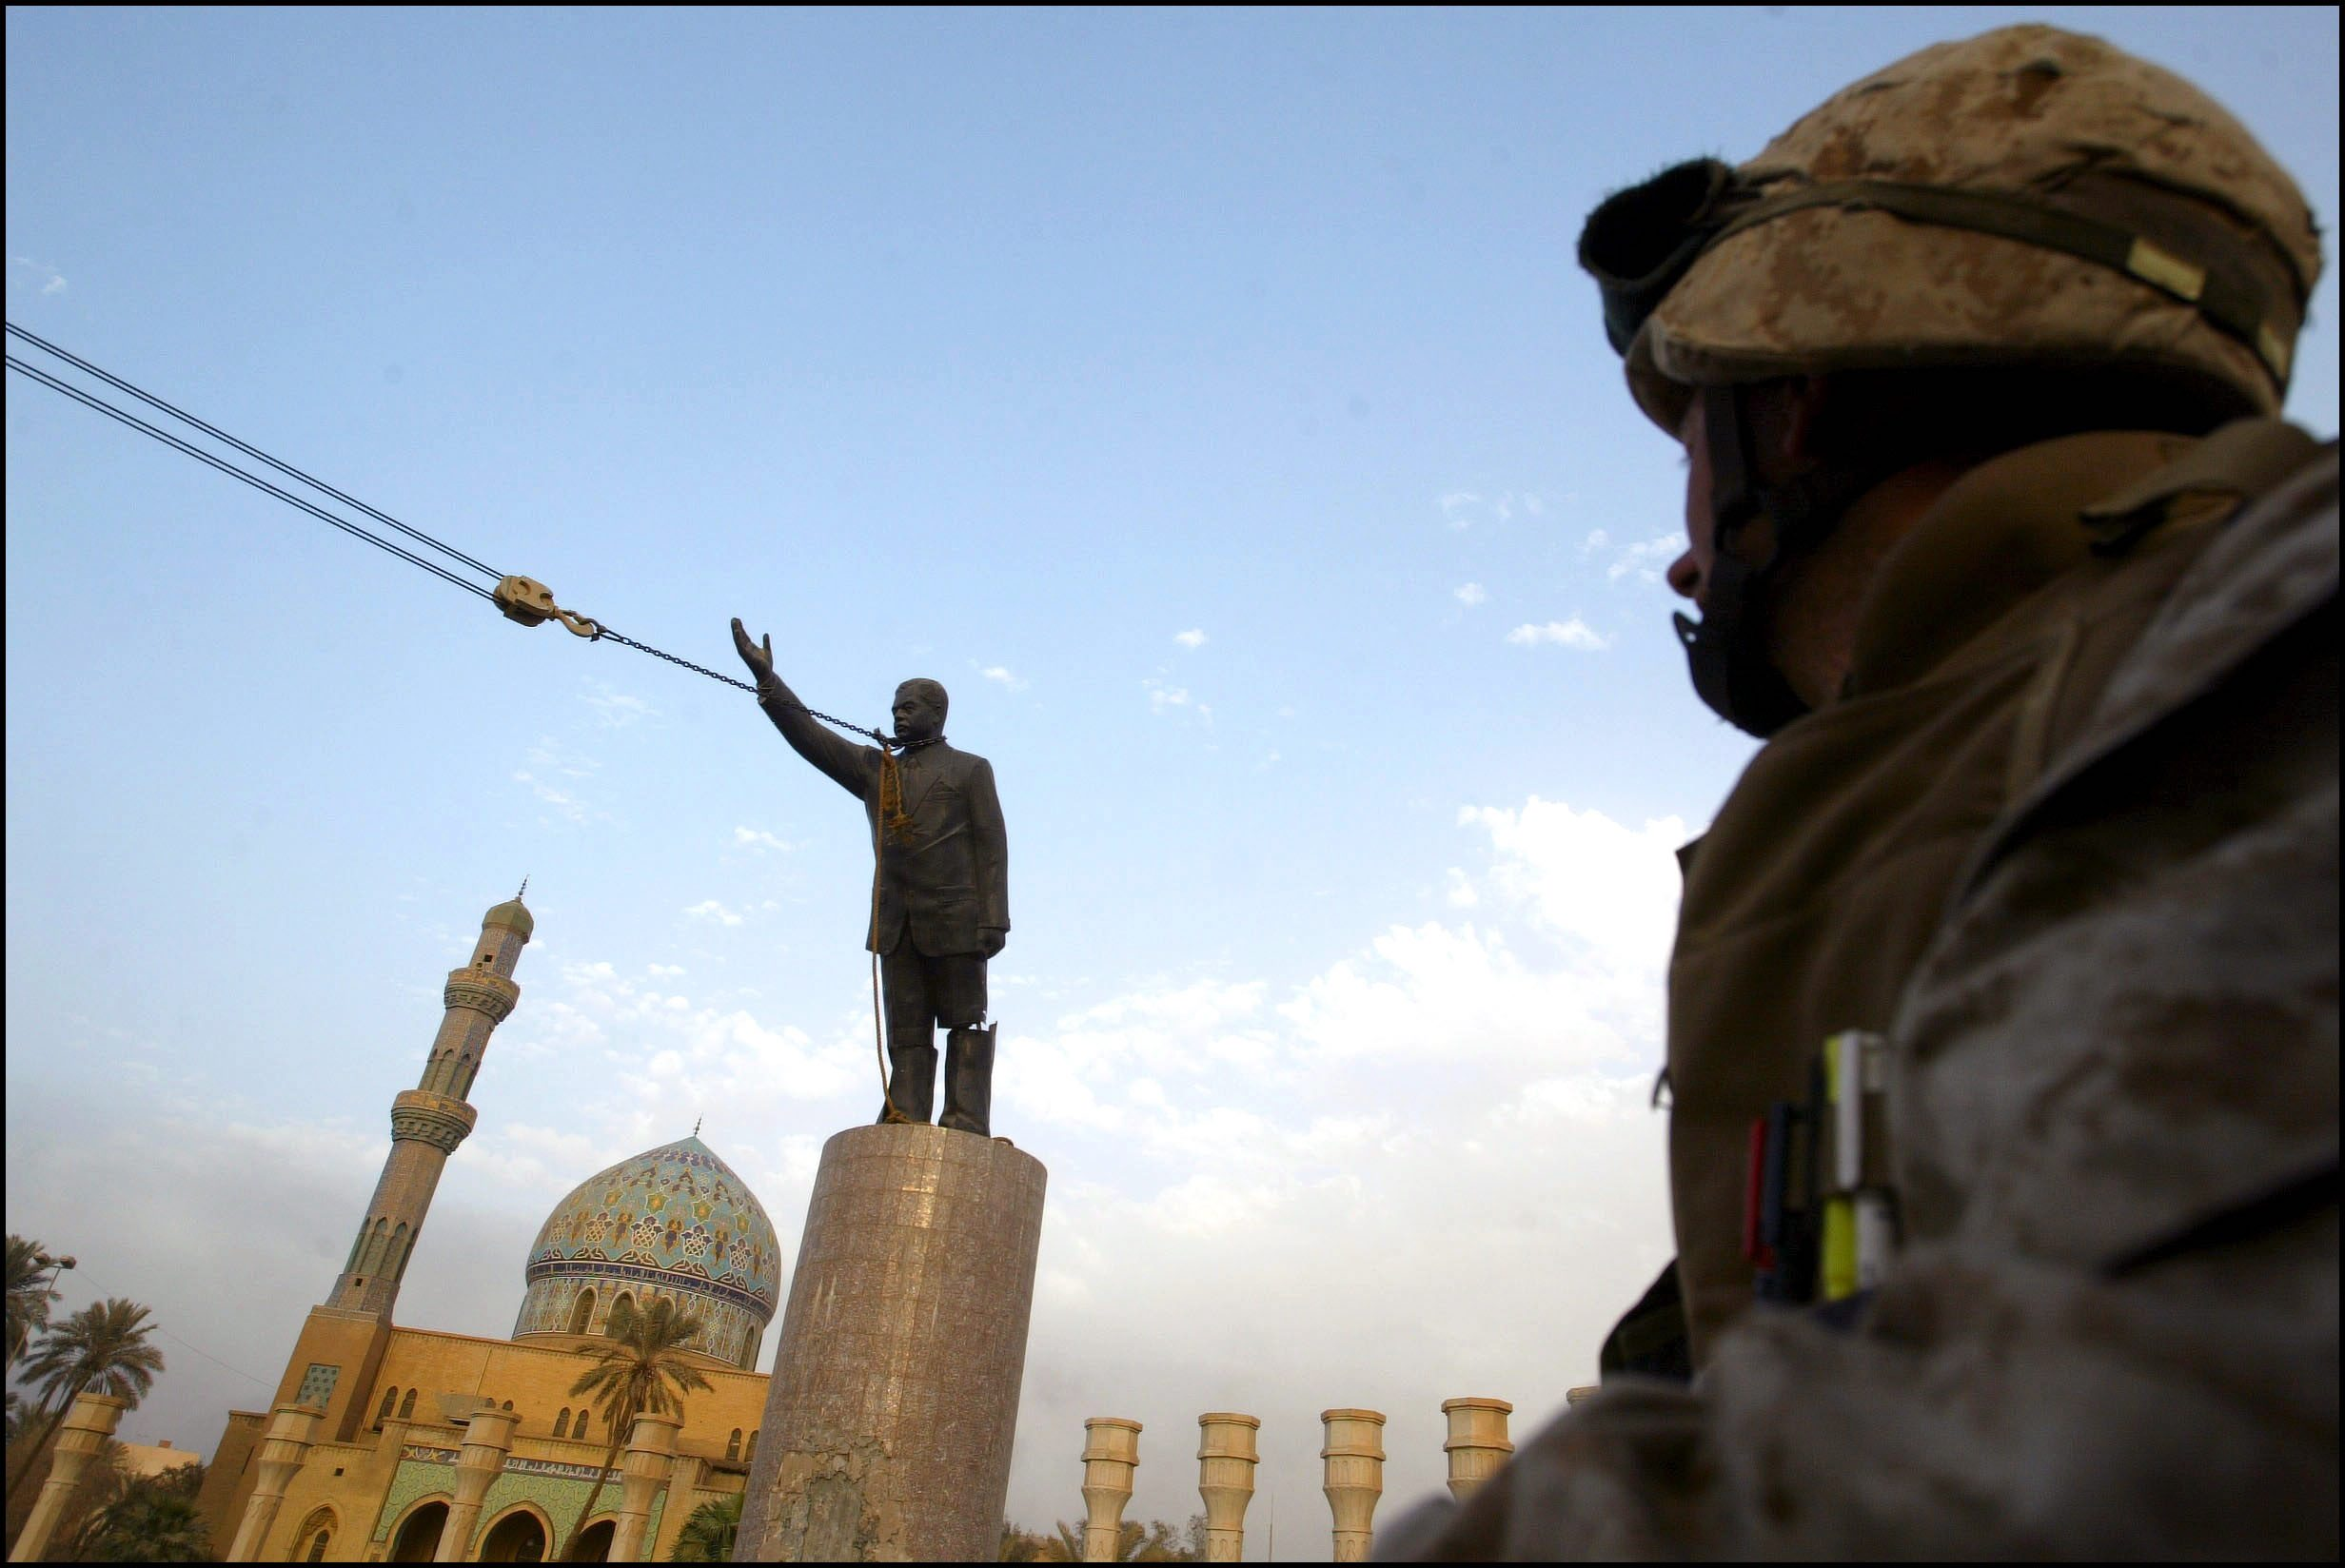 U.S. Marine watches as statue of Saddam Hussein topples in 2003.